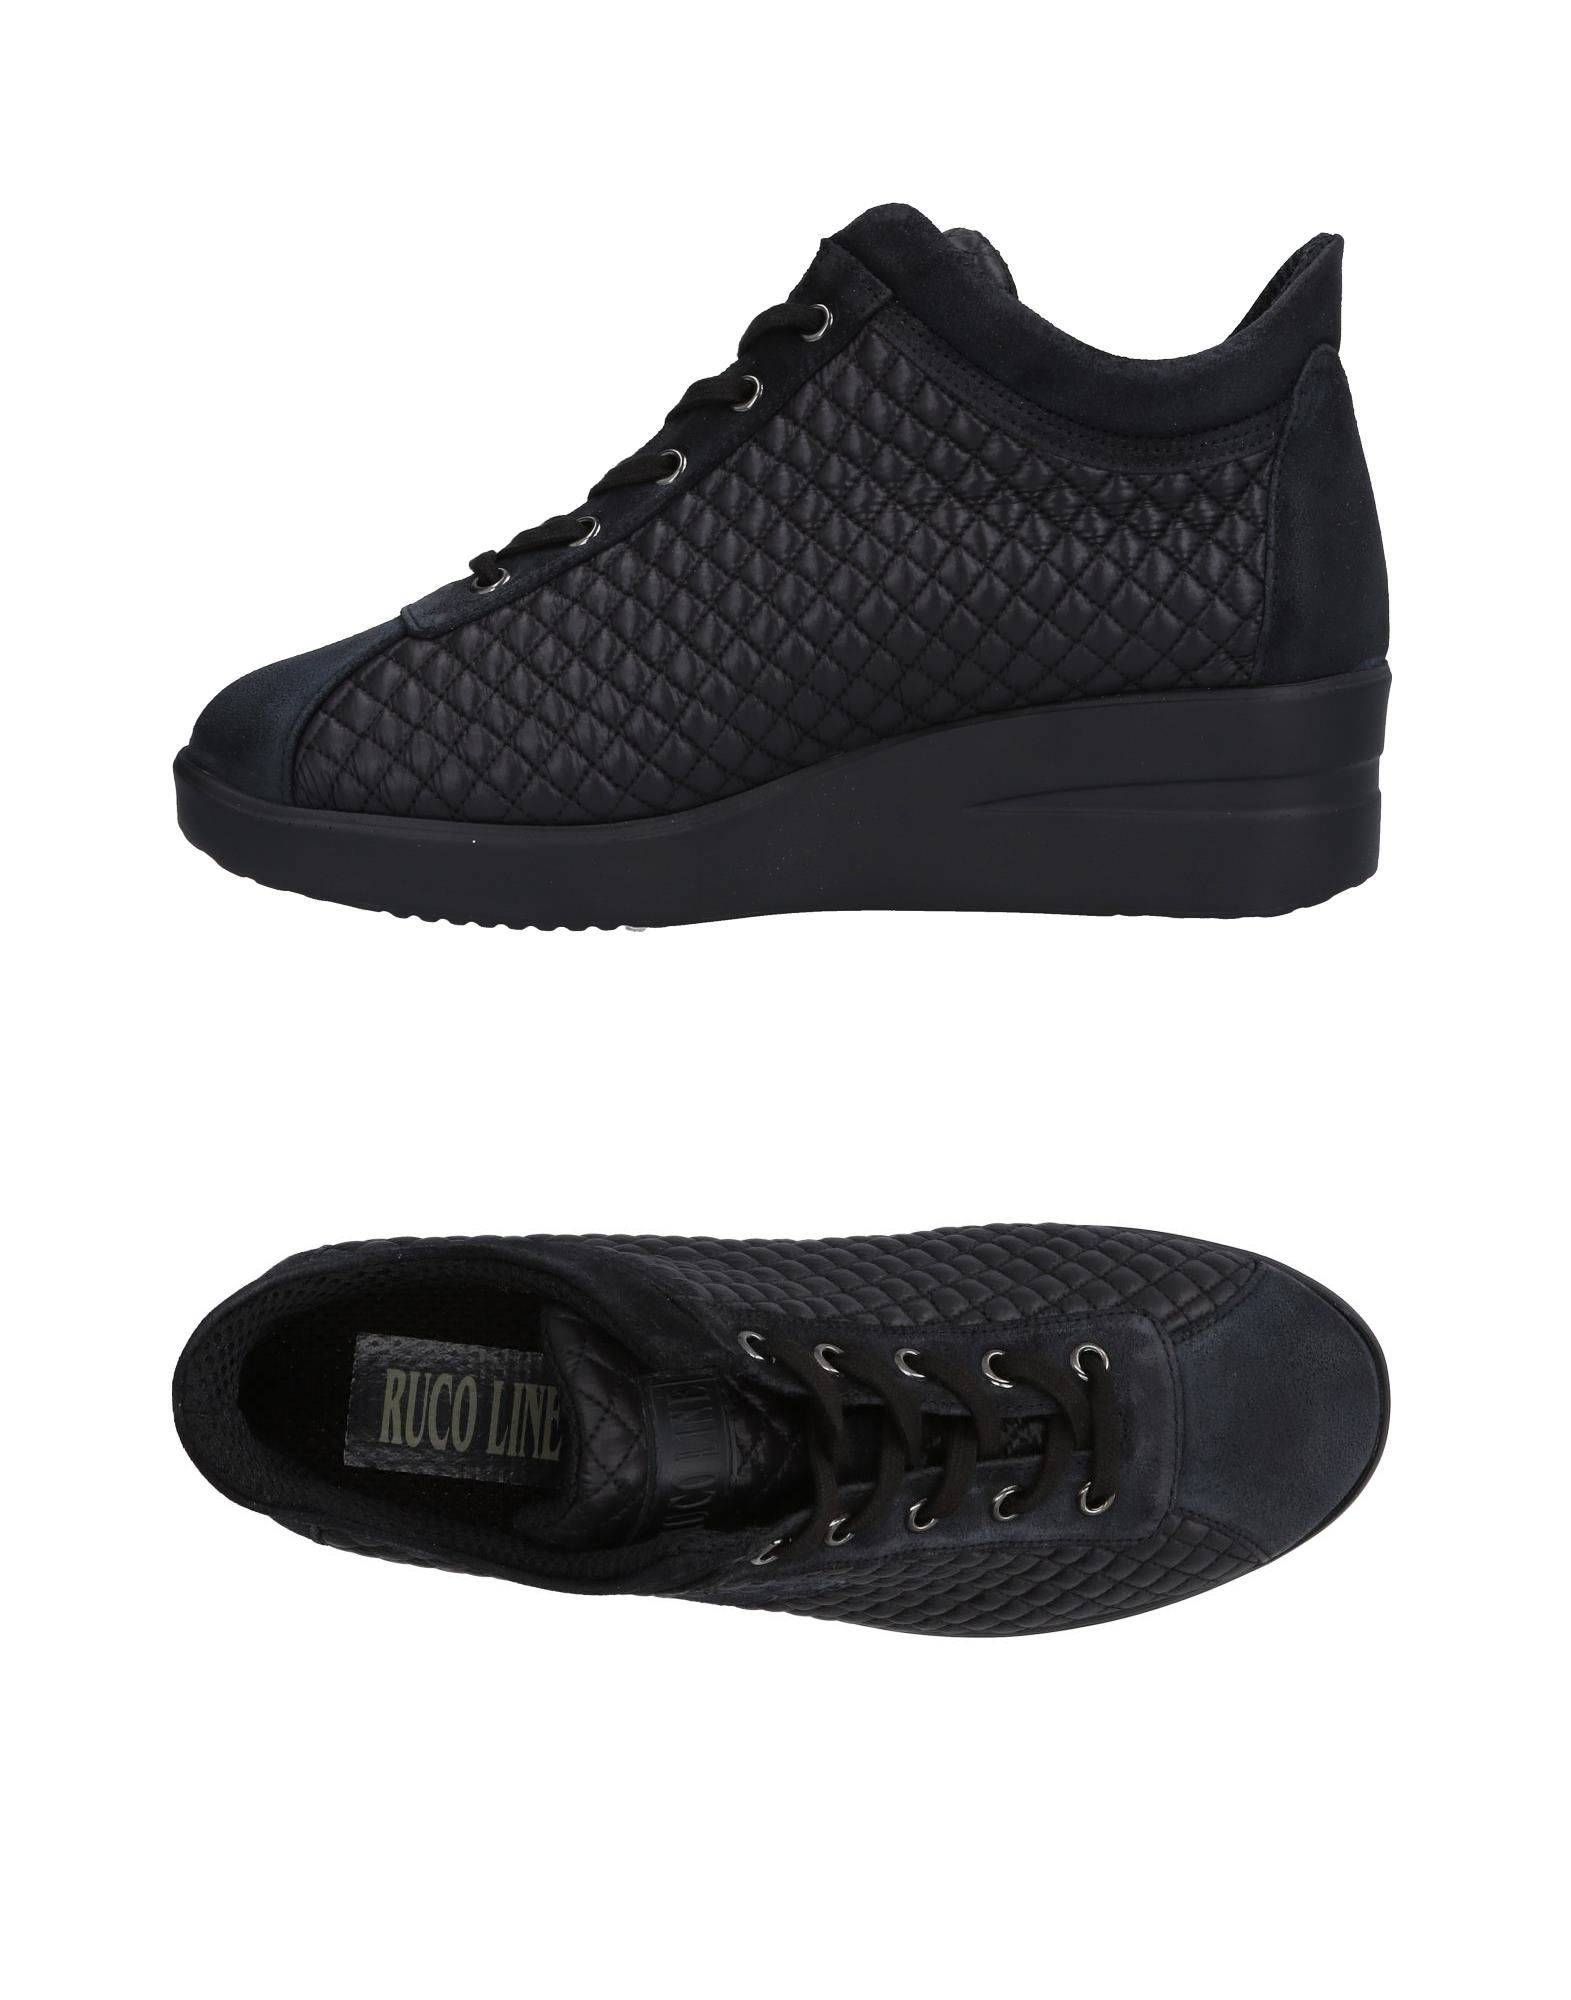 Sneakers Ruco Line Donna - 11498890FG